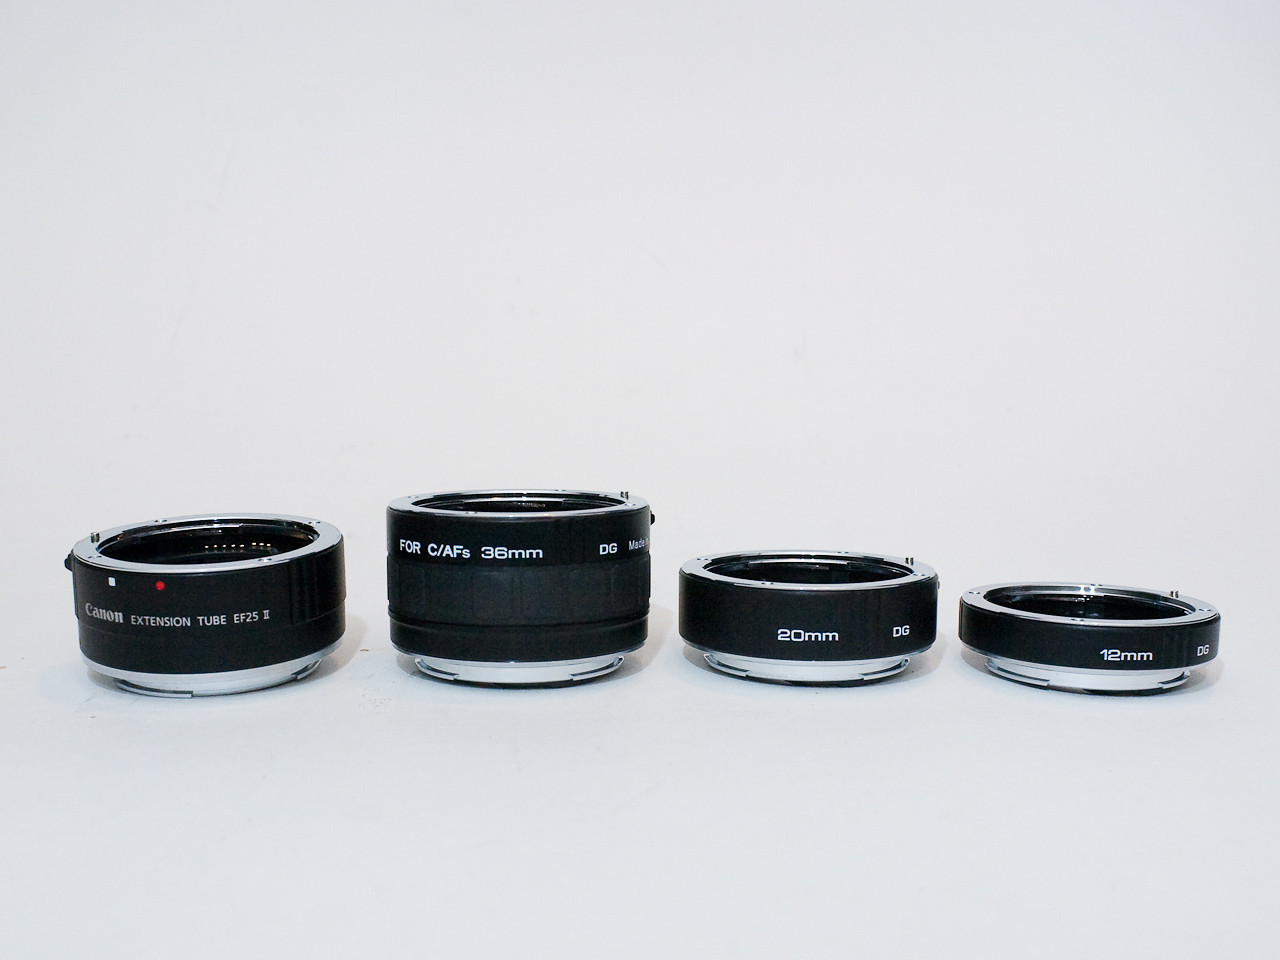 Canon 25mm plus Kenko 36mm, 20mm and 12mm extension tubes